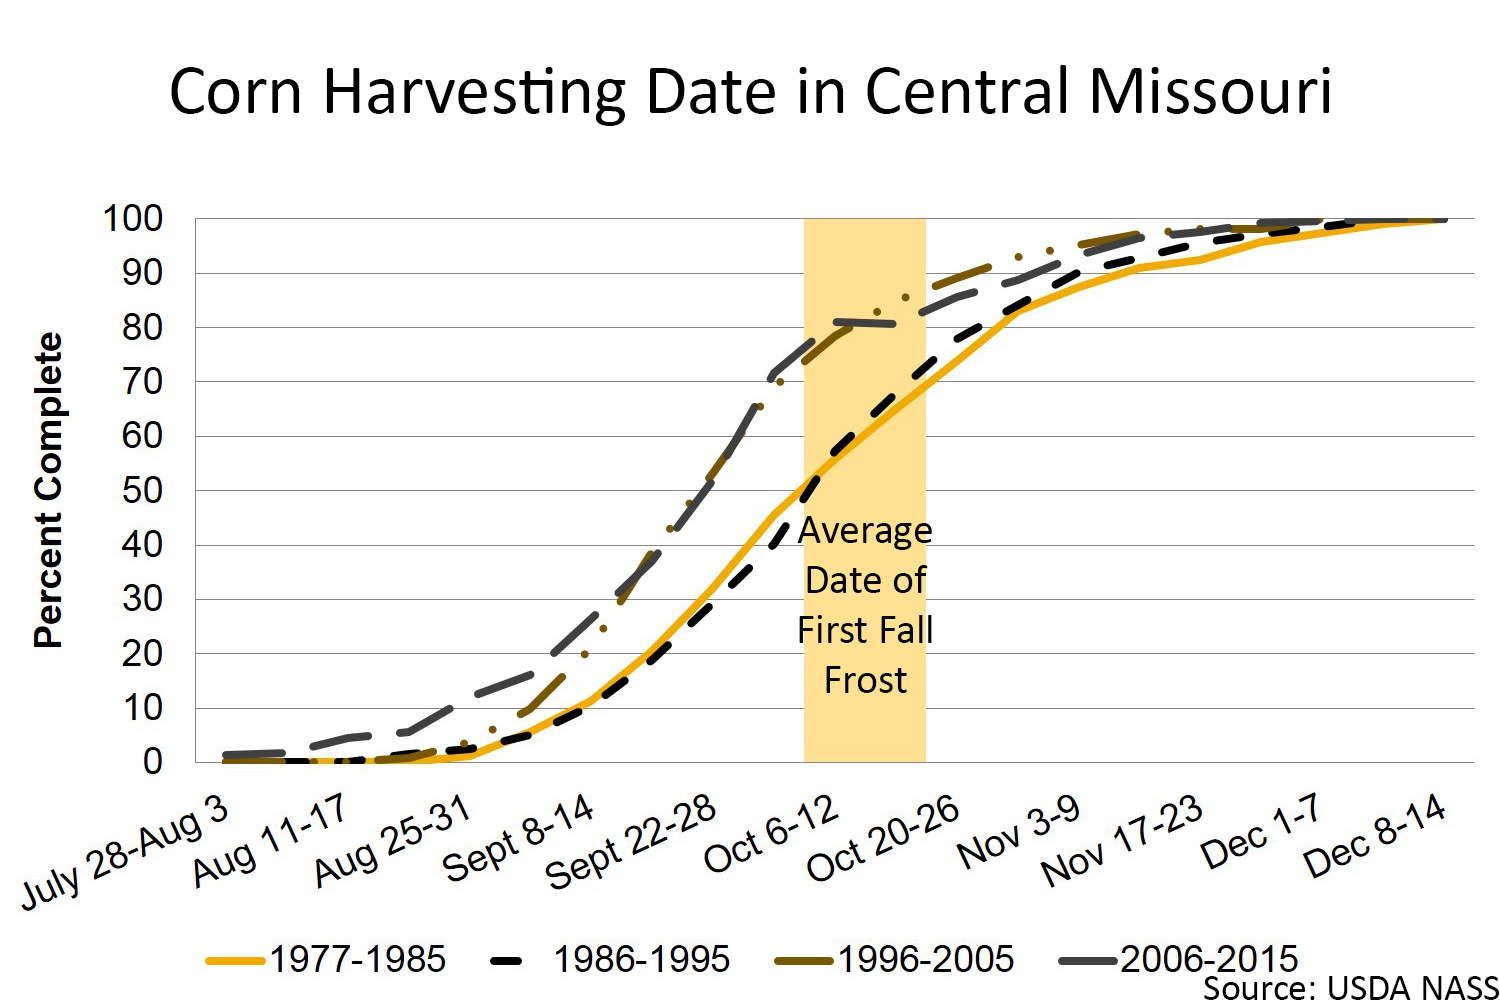 Corn harvesting date in central Missouri chart